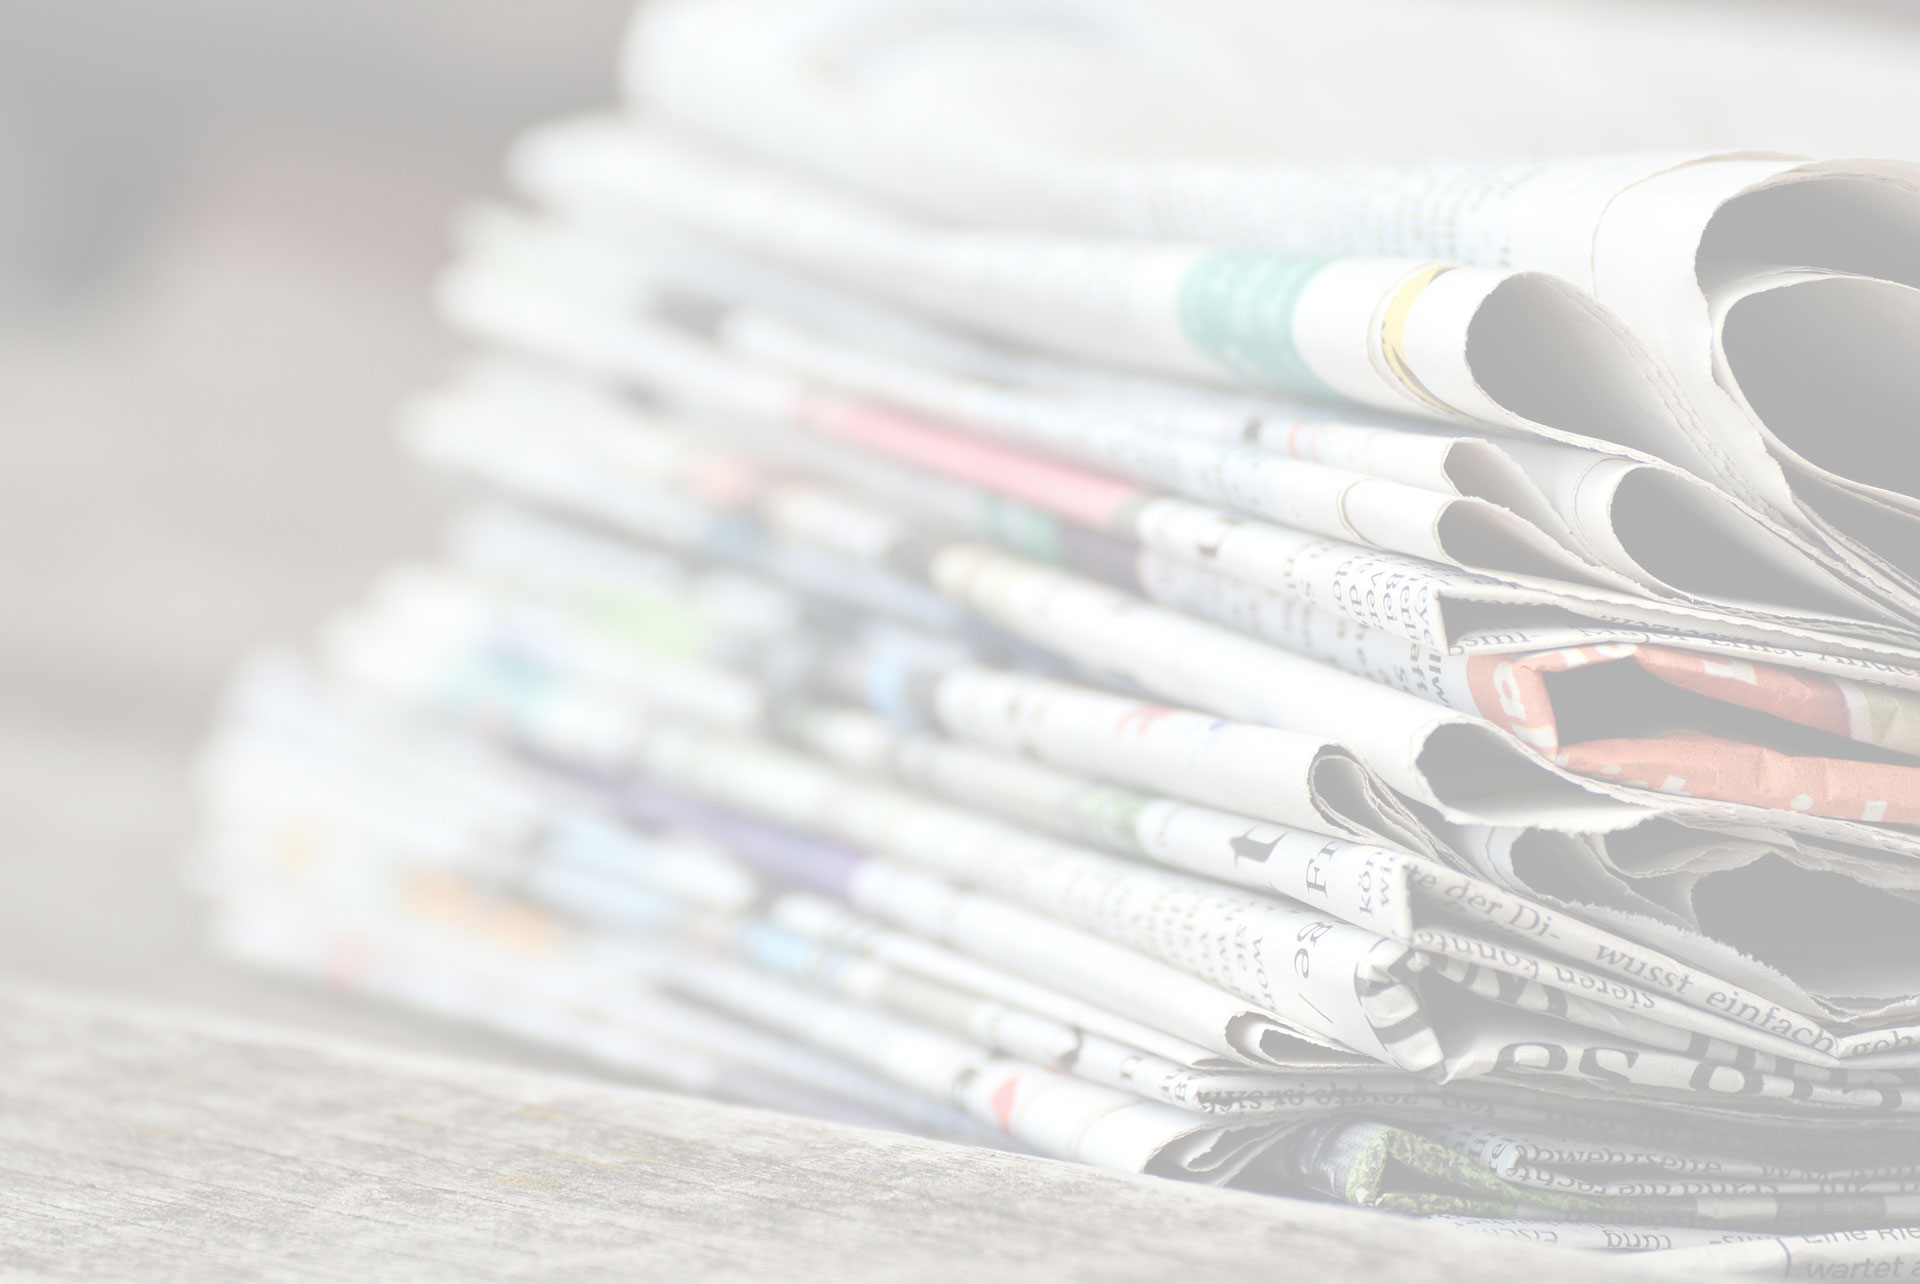 Milan International Champions Cup